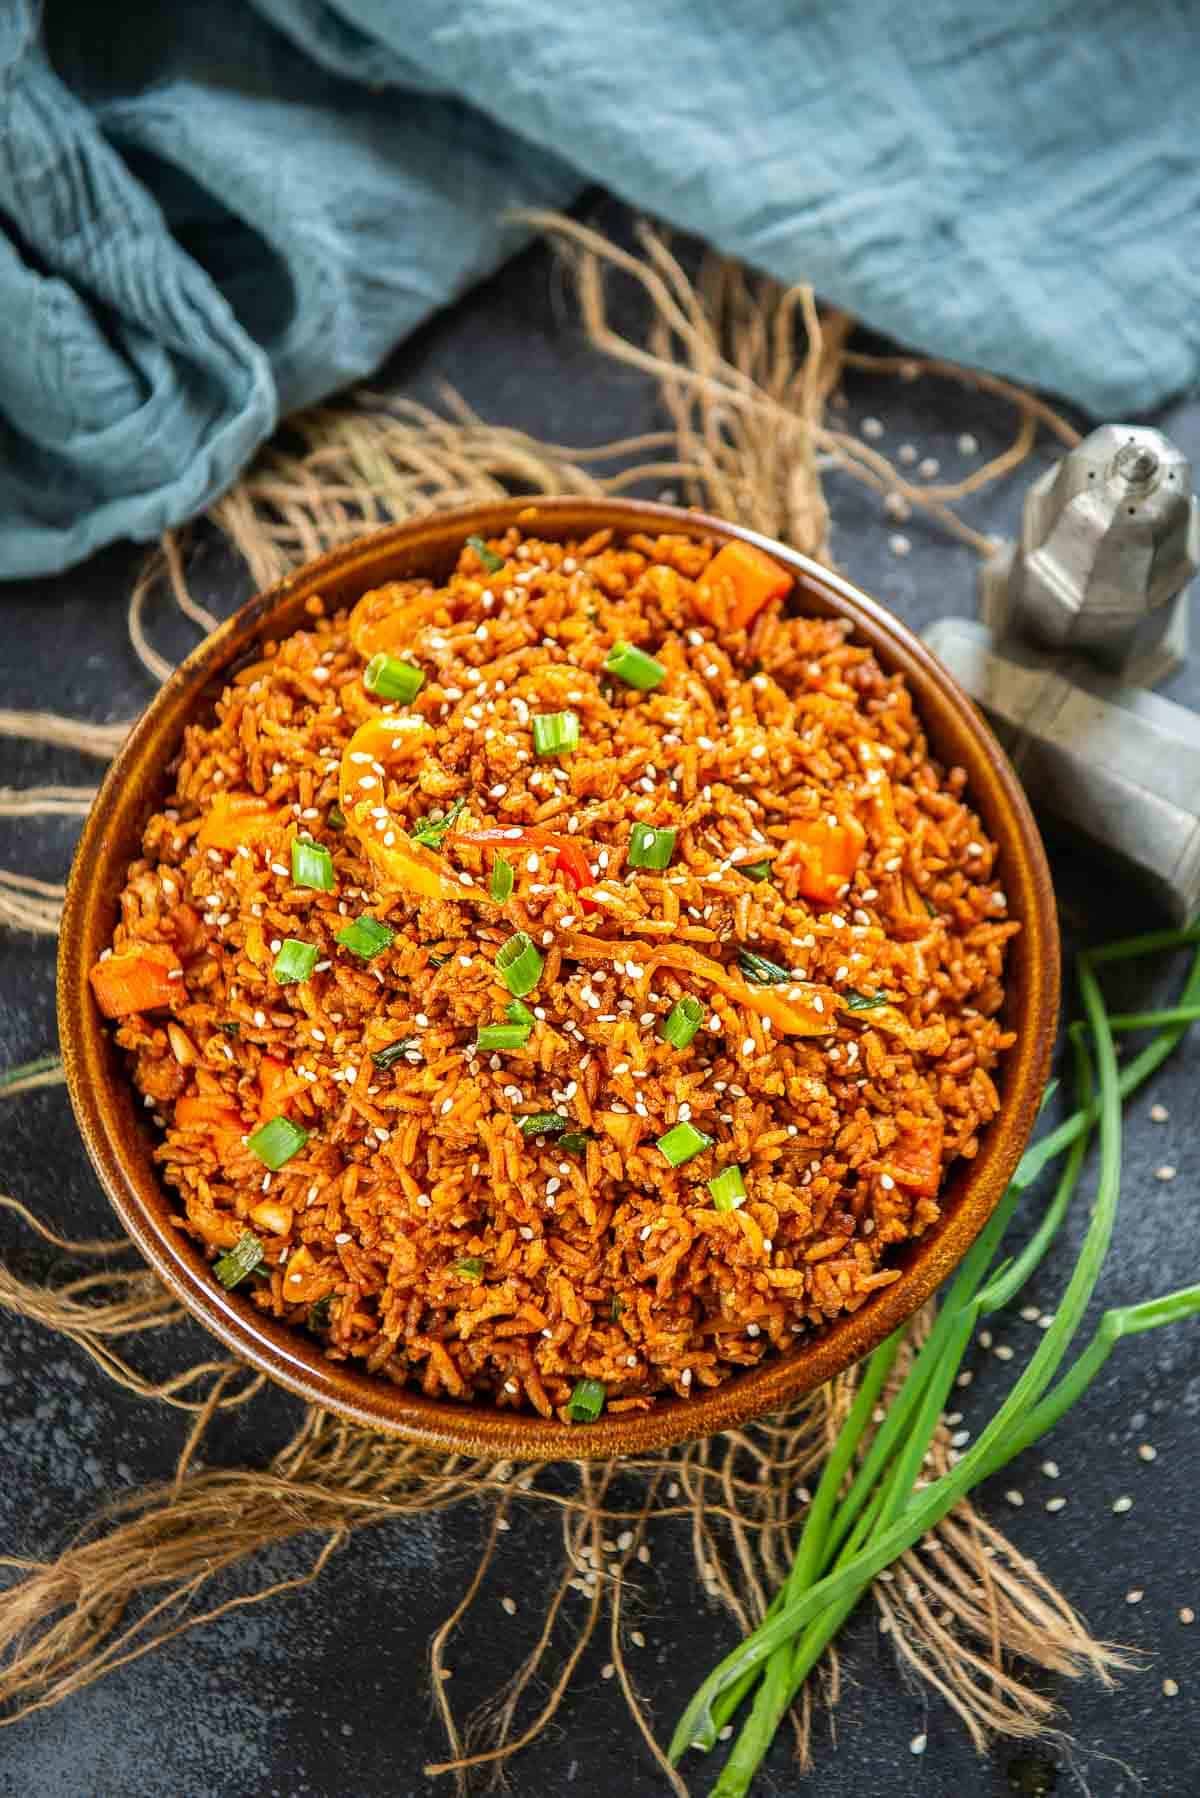 Gochujang fried rice served in a bowl.